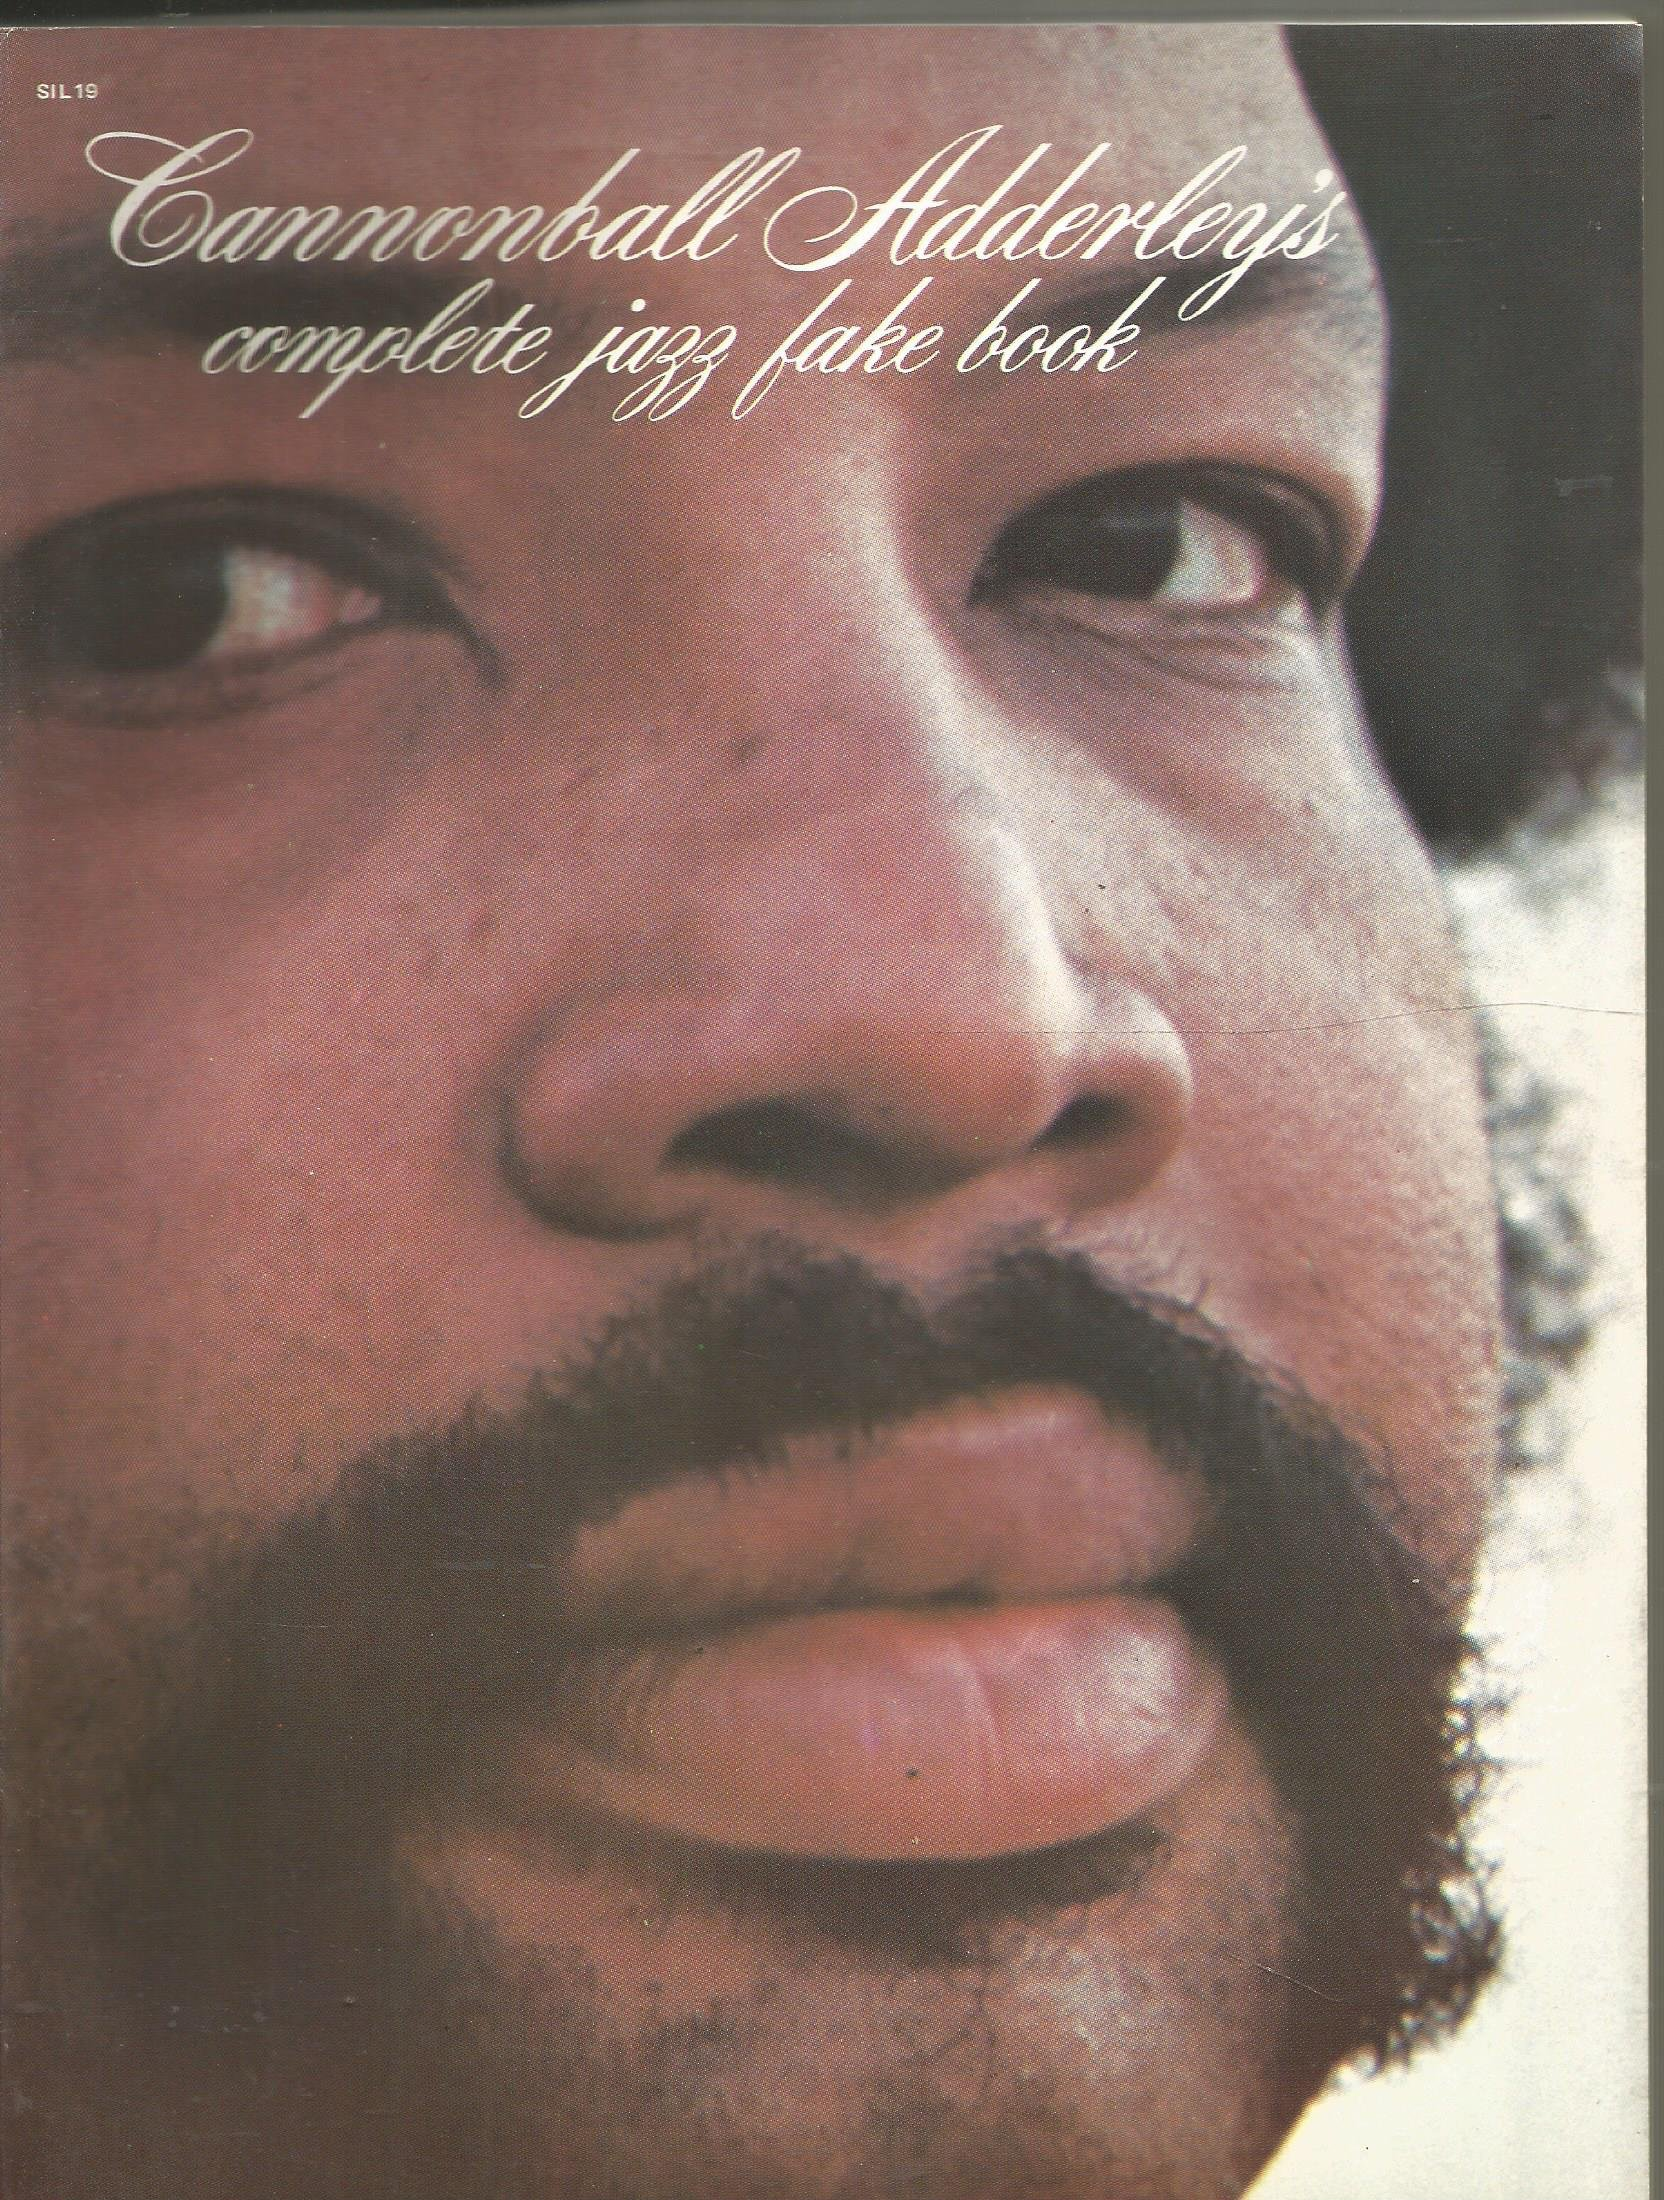 Cannonball Adderley's complete jazz fake book: no author named